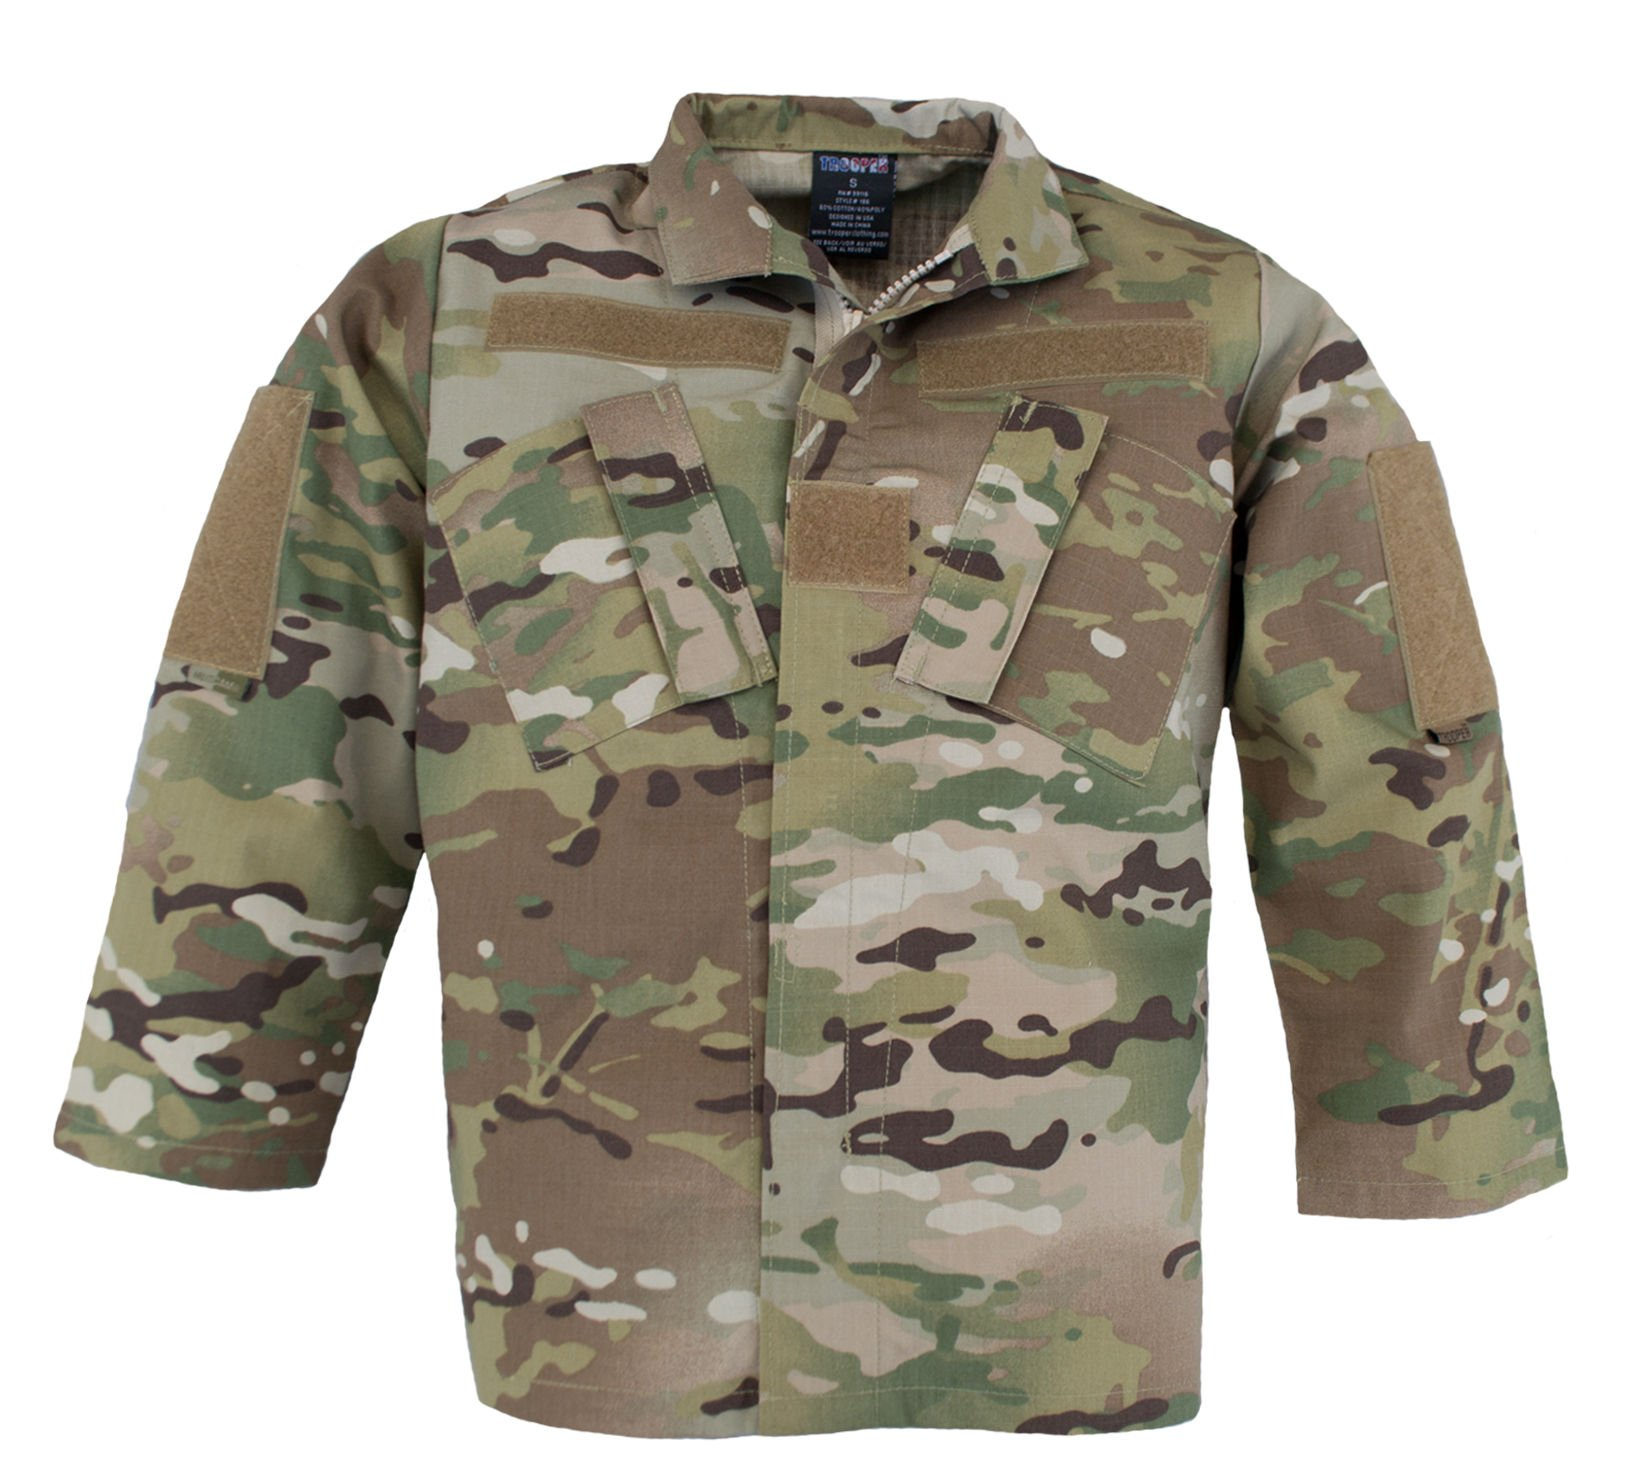 Trooper Clothing Kids Multicam Uniform Jacket - Medium (10-12)